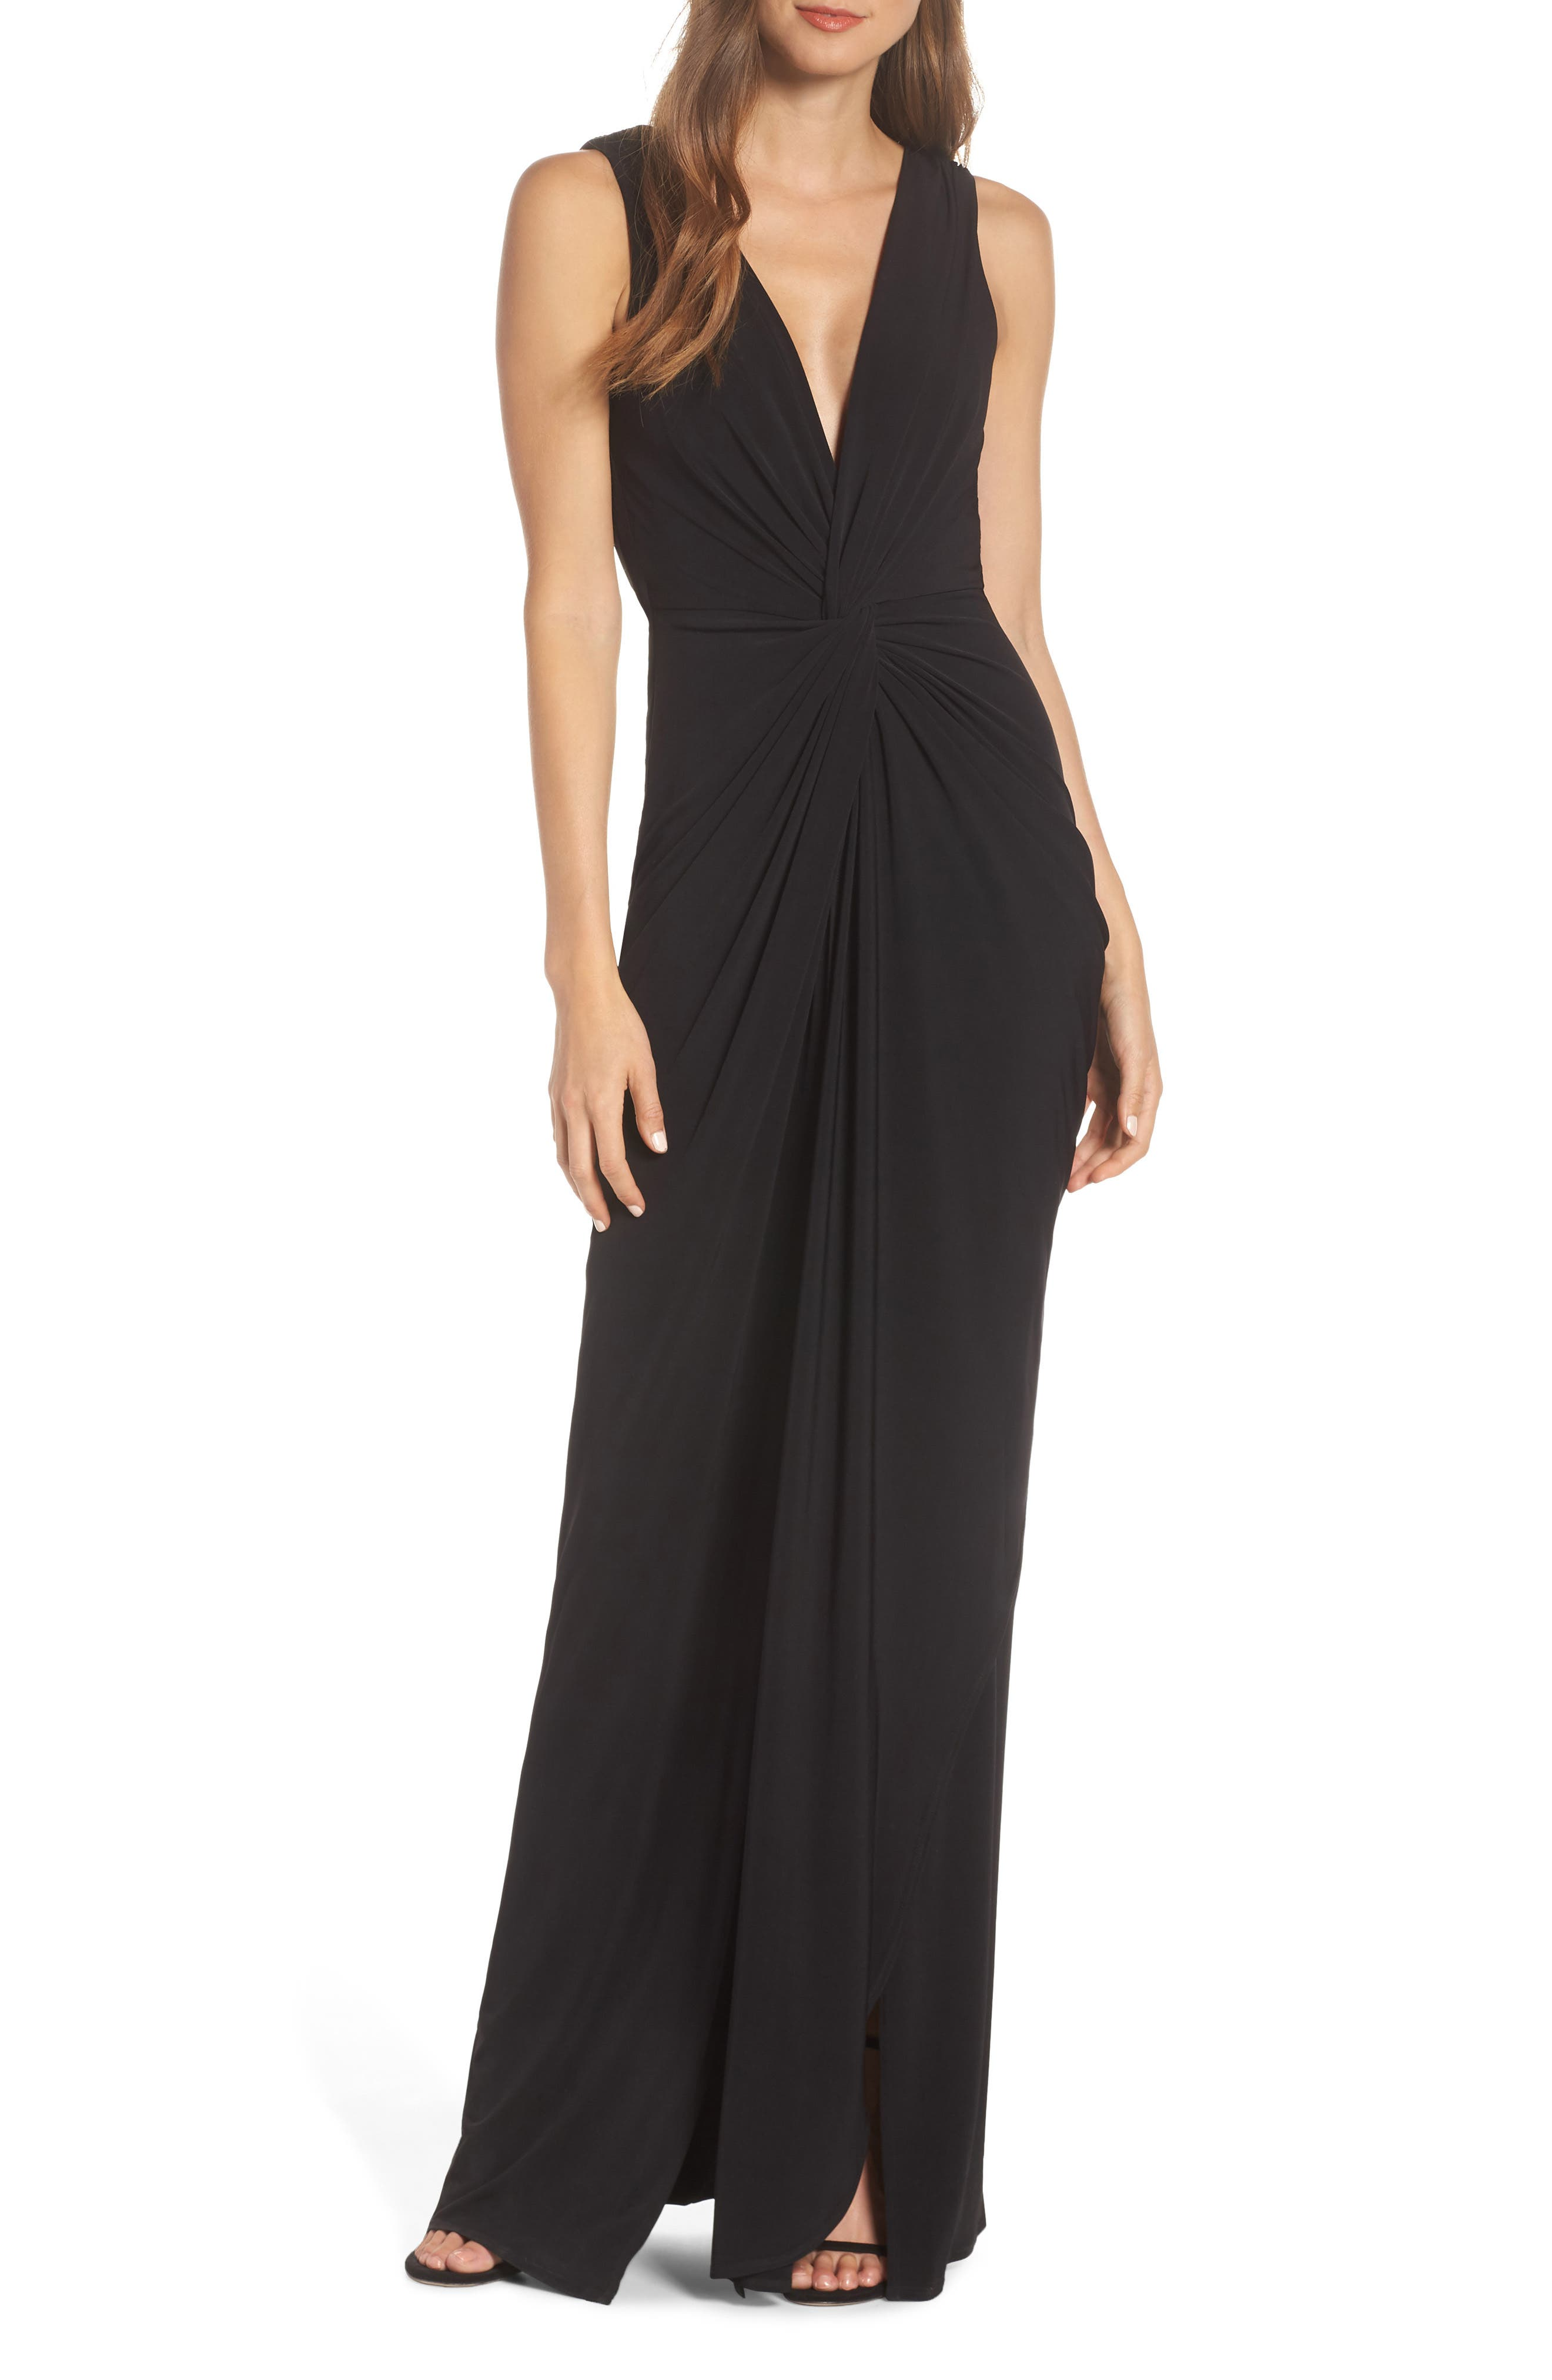 Katie May Leo Twist Front Evening Dress, Black